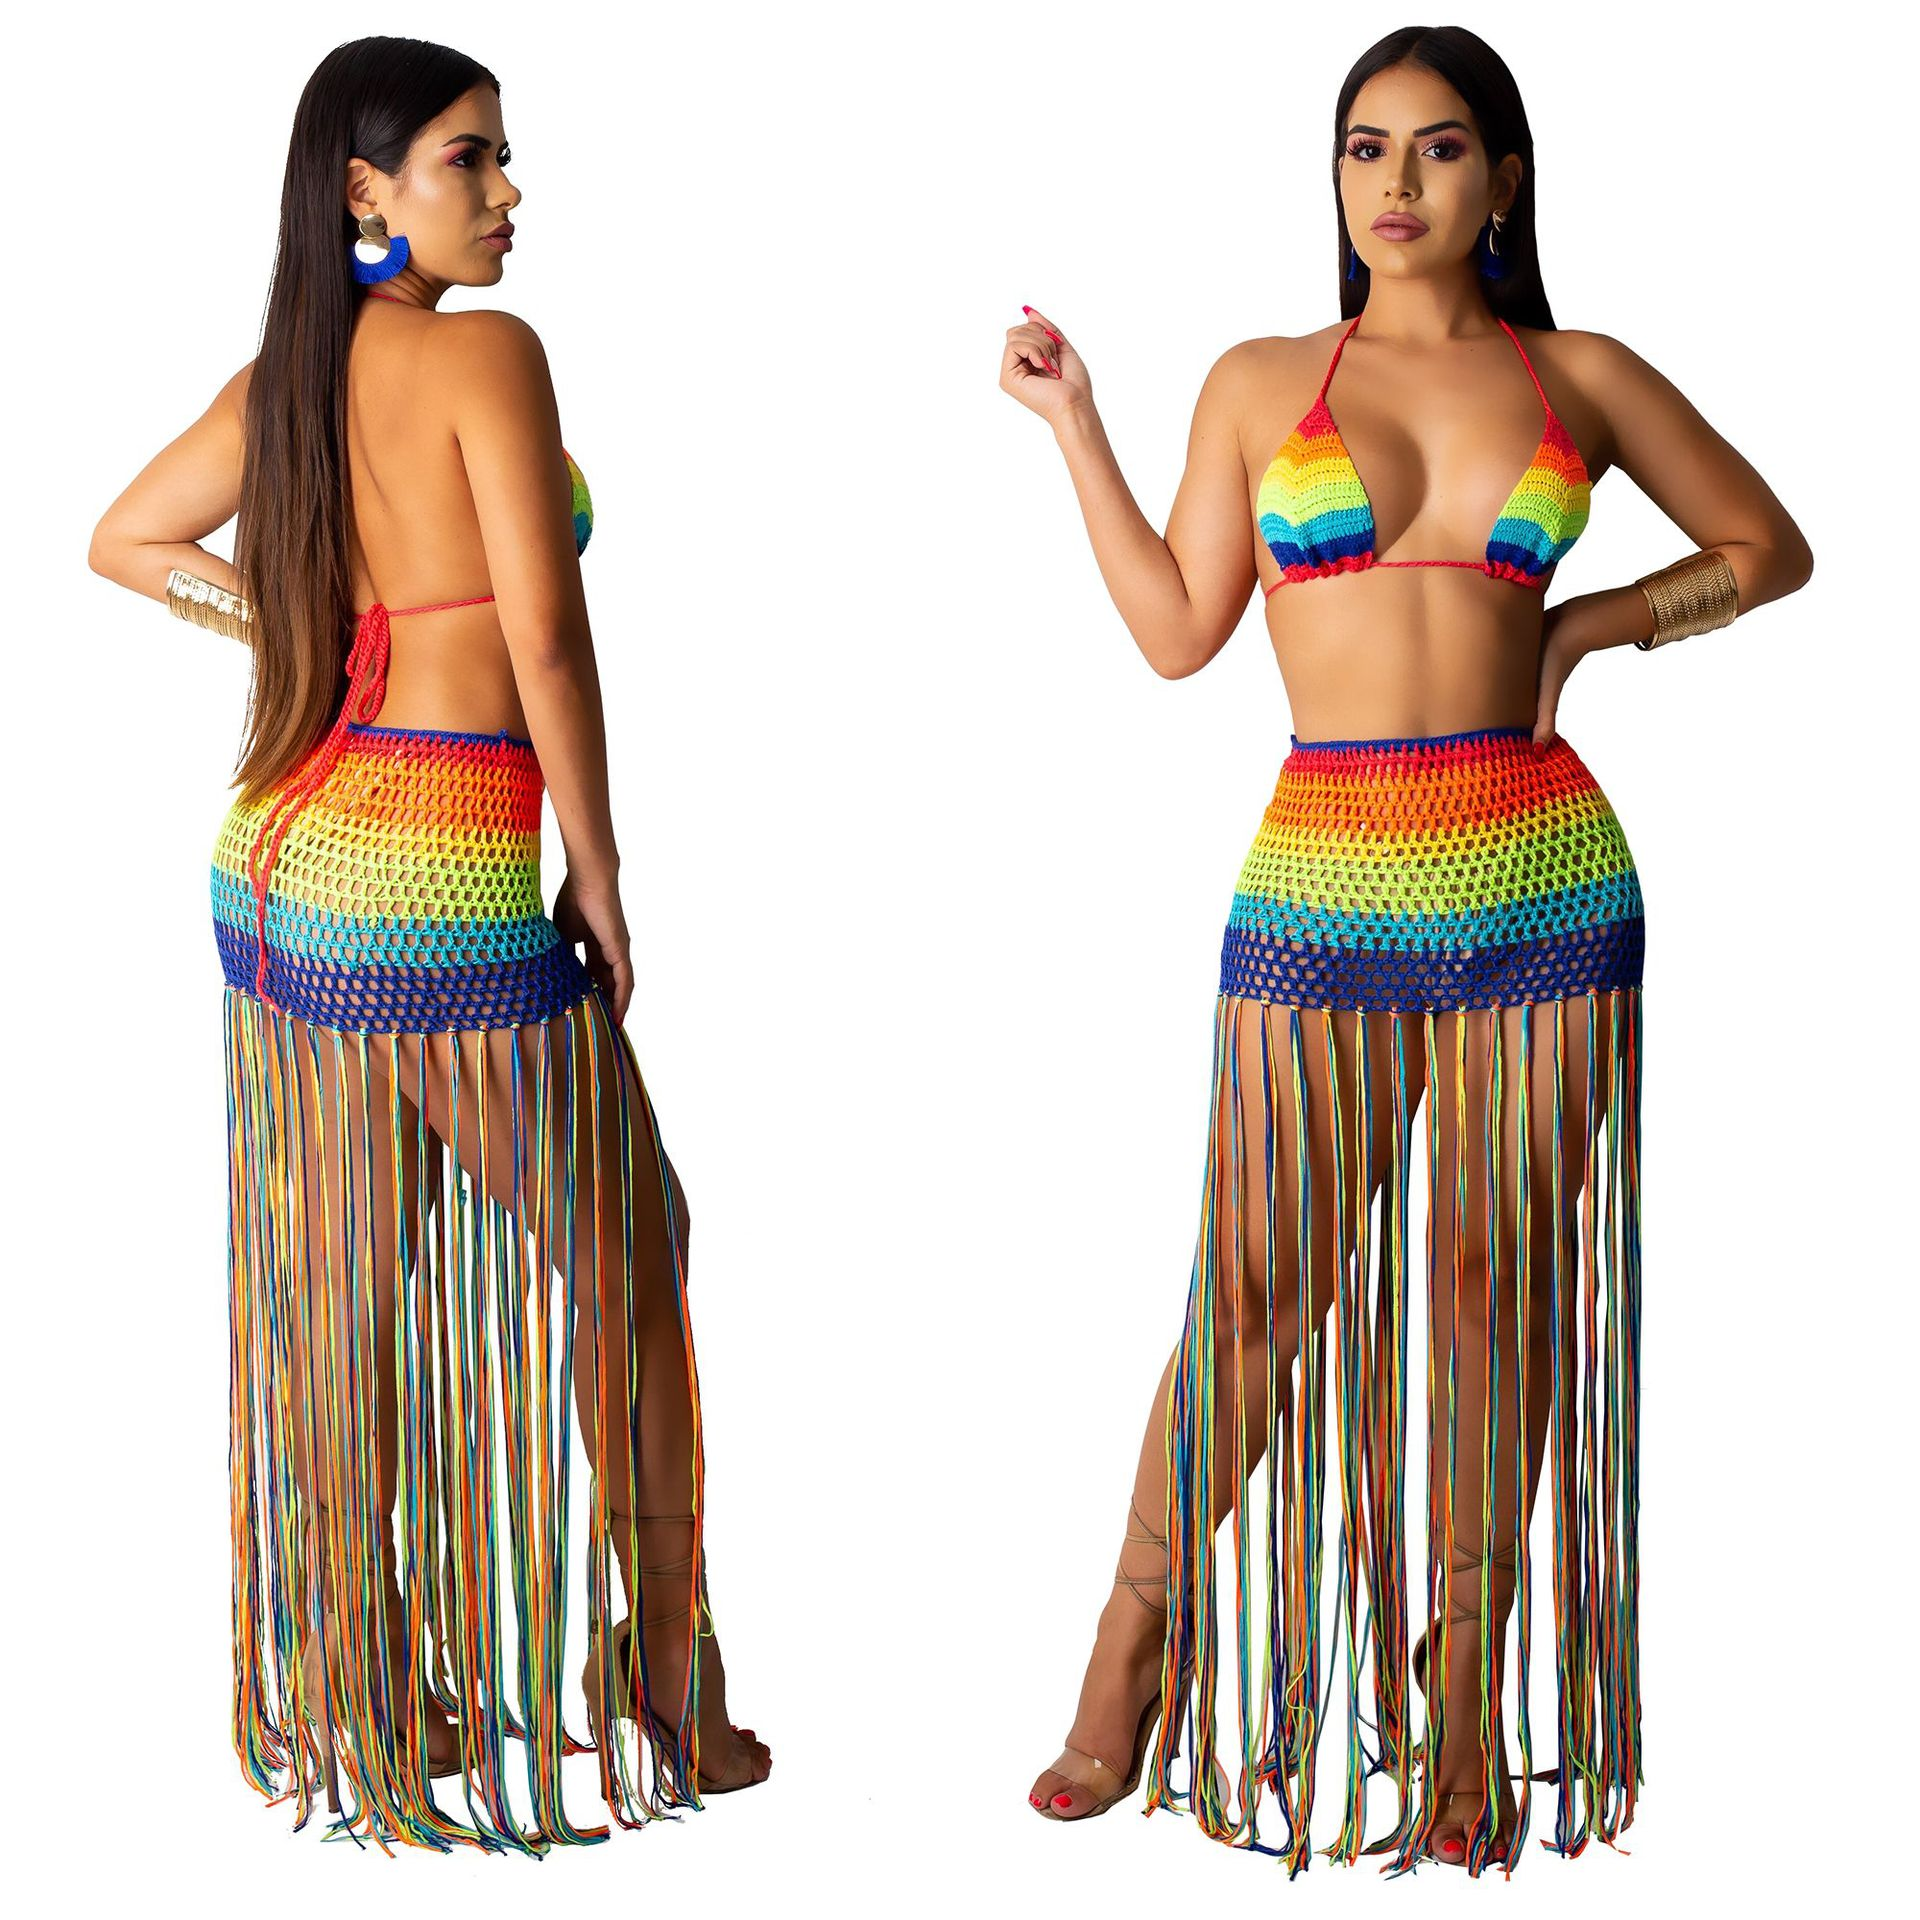 Electricity Supplier Hot Selling Europe And America WOMEN'S Dress Sexy Handmade Crocheting Tassels Leisure Suit Swi